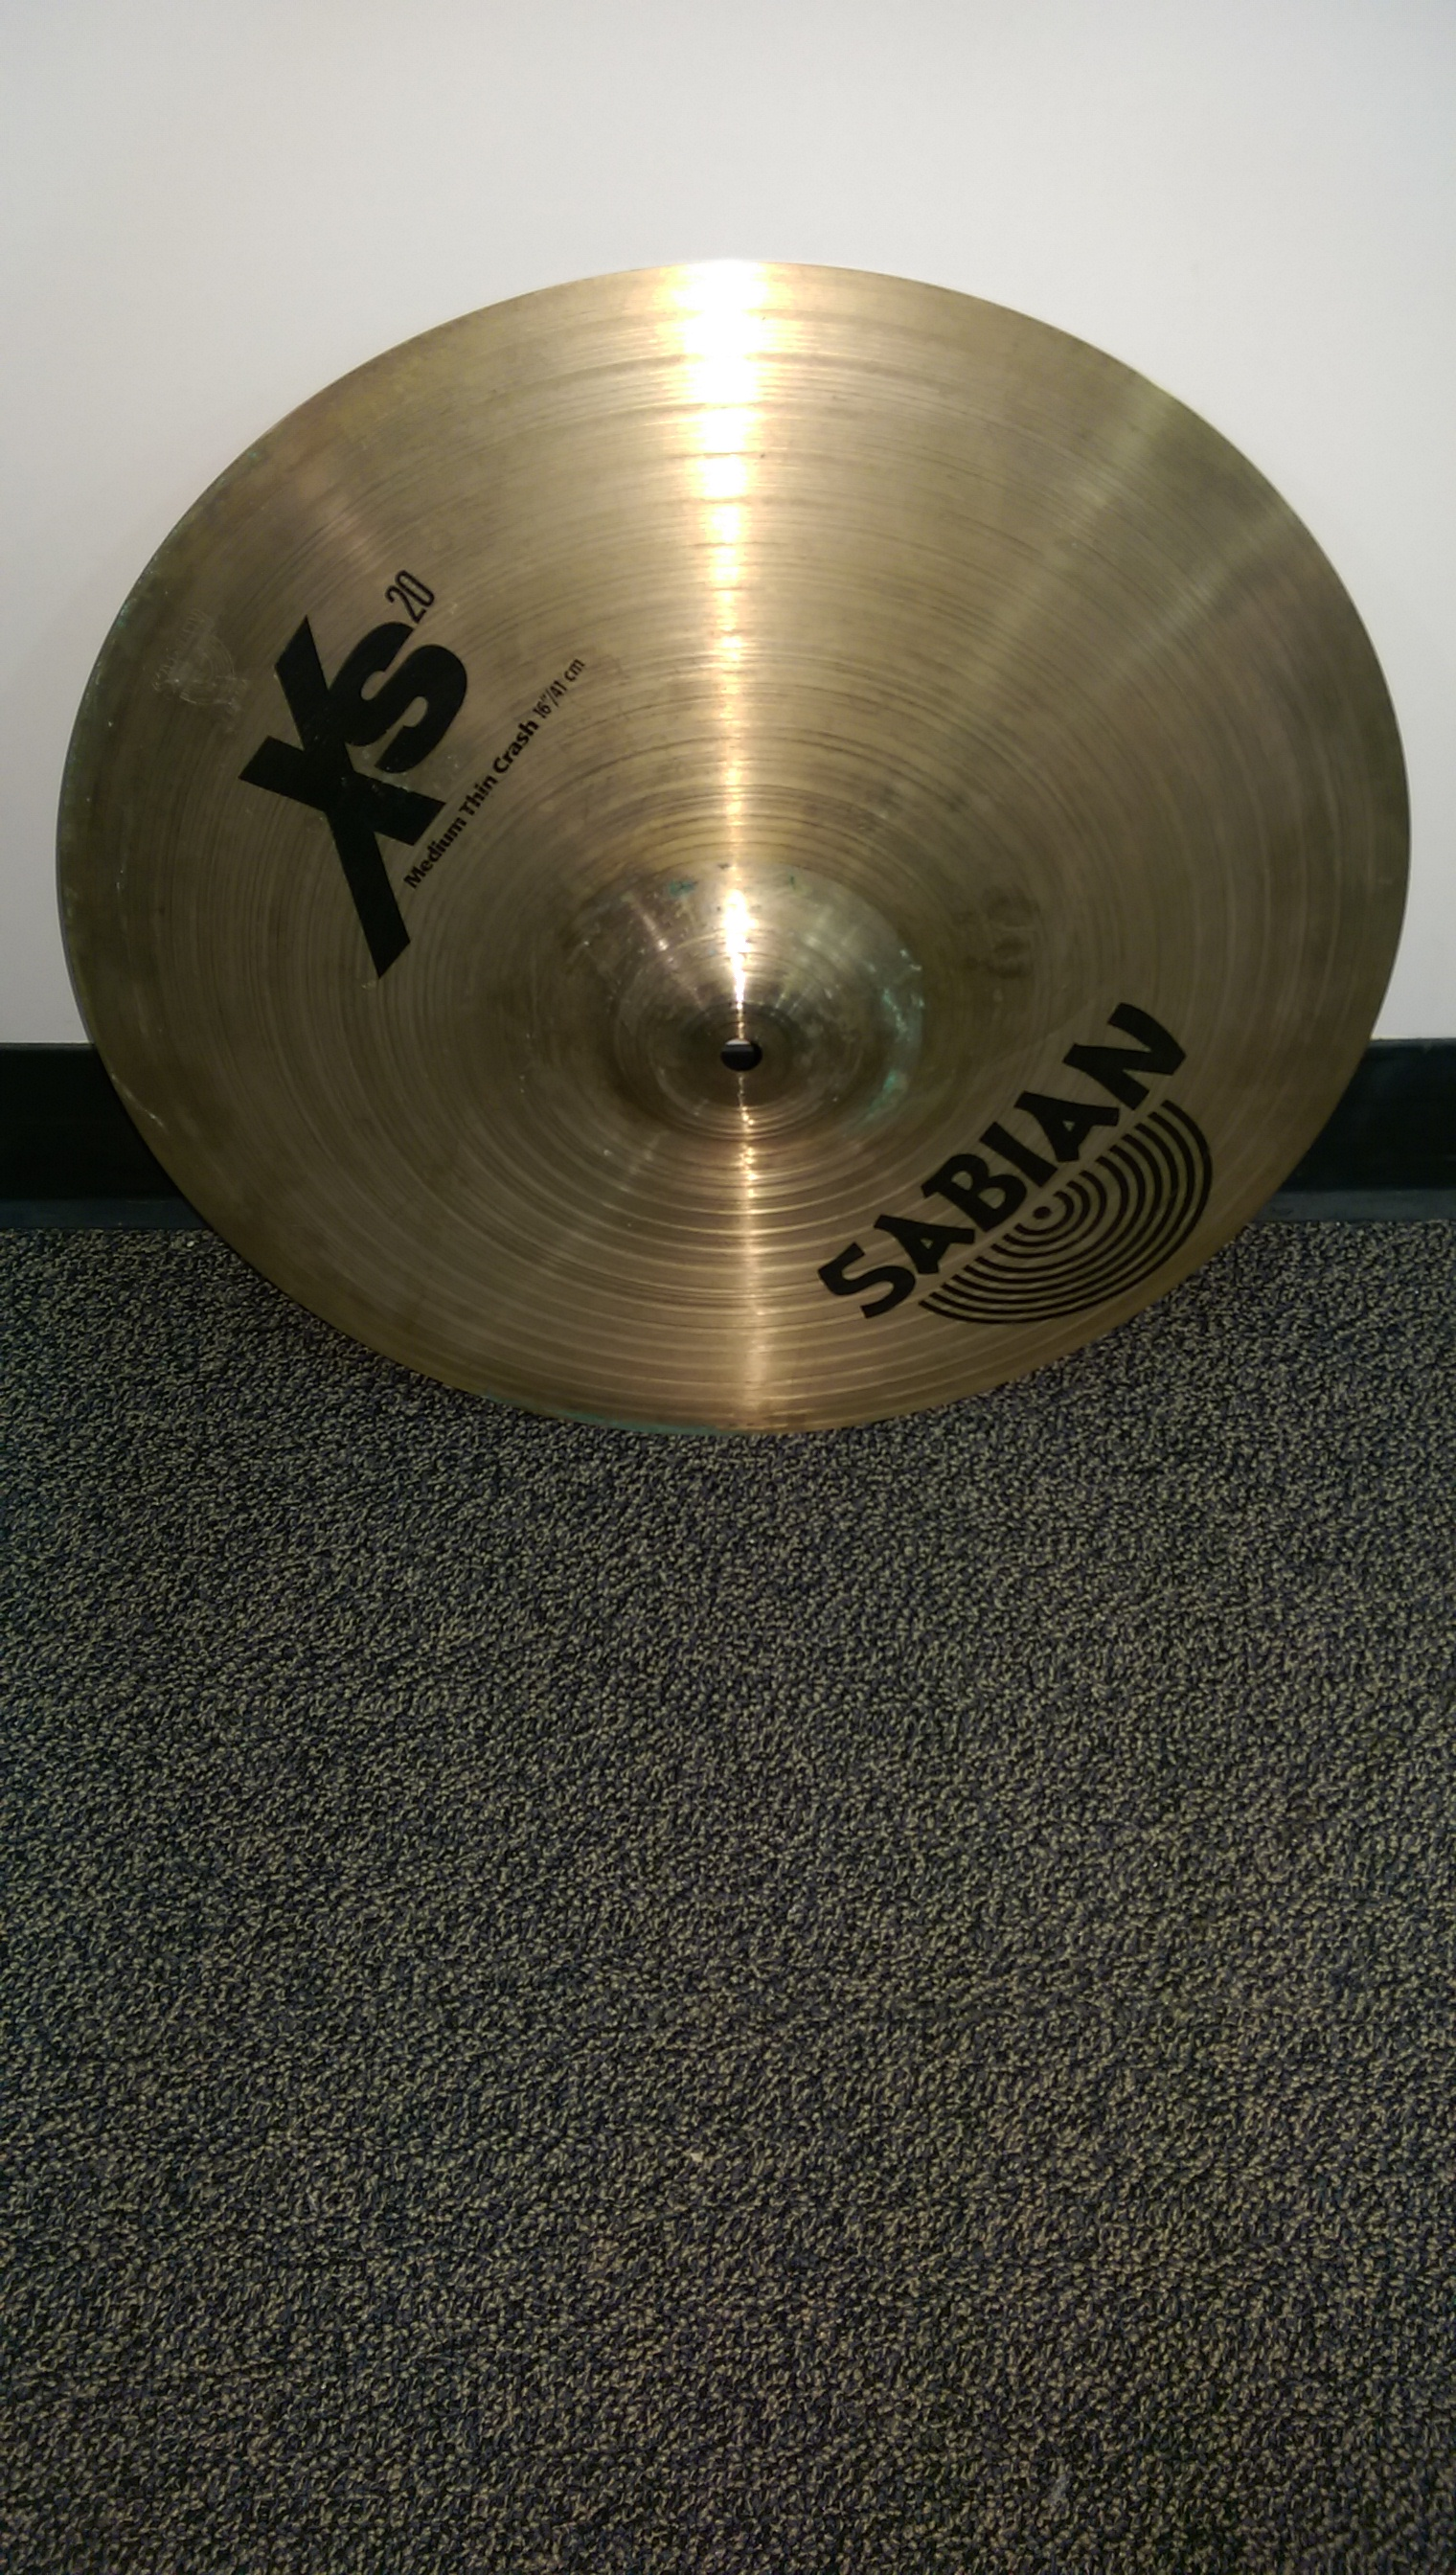 Sabian - sabian xs20 medium thin crash 16